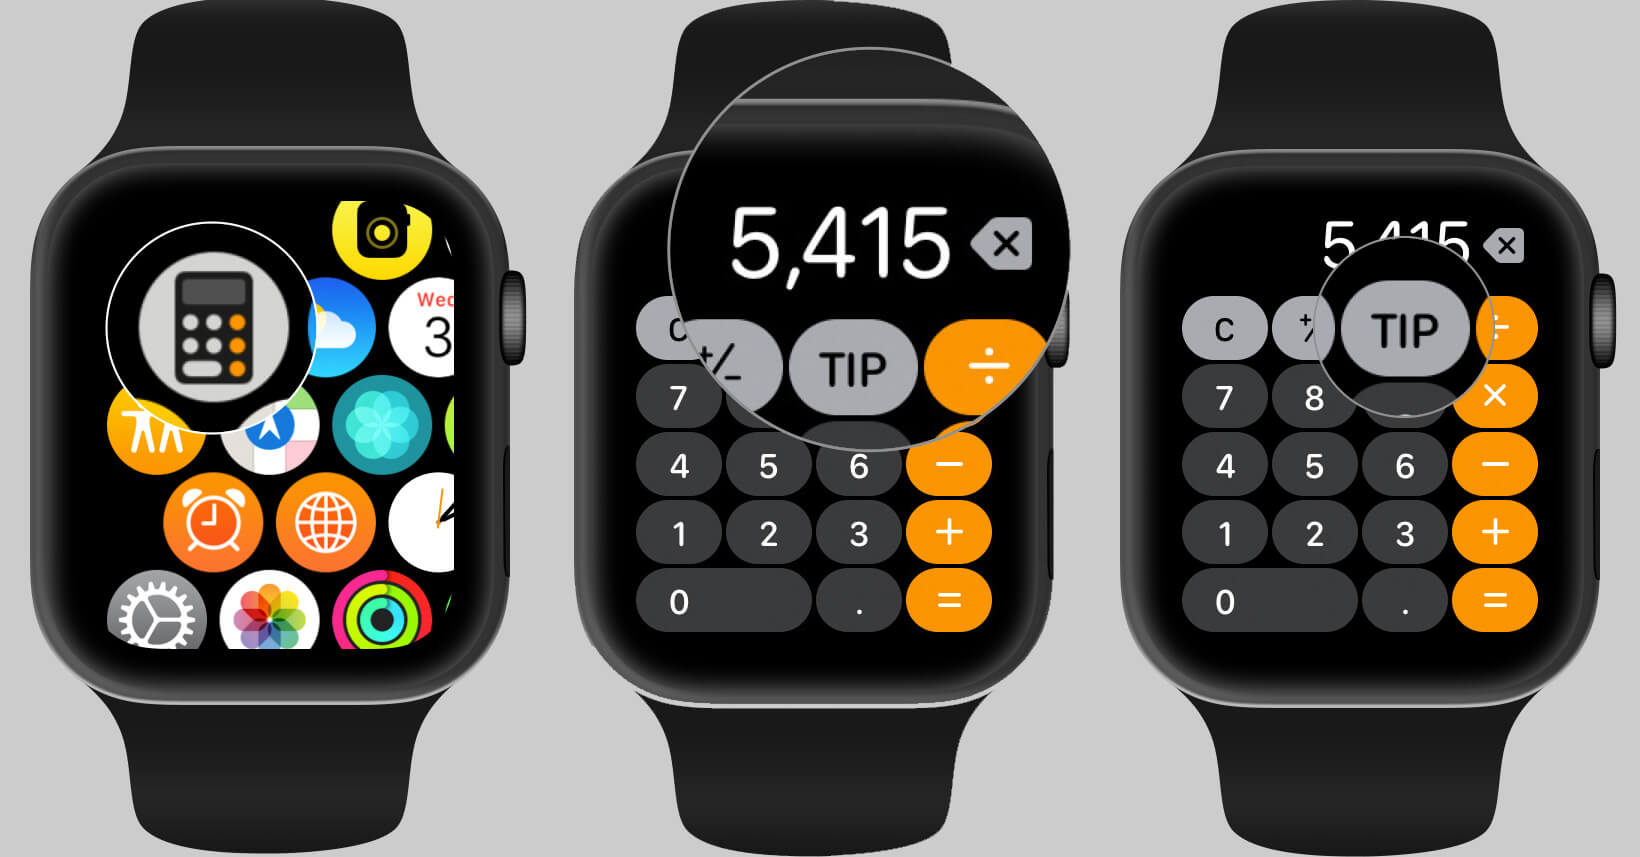 Use Calculator App on Apple Watch in watchOS 6